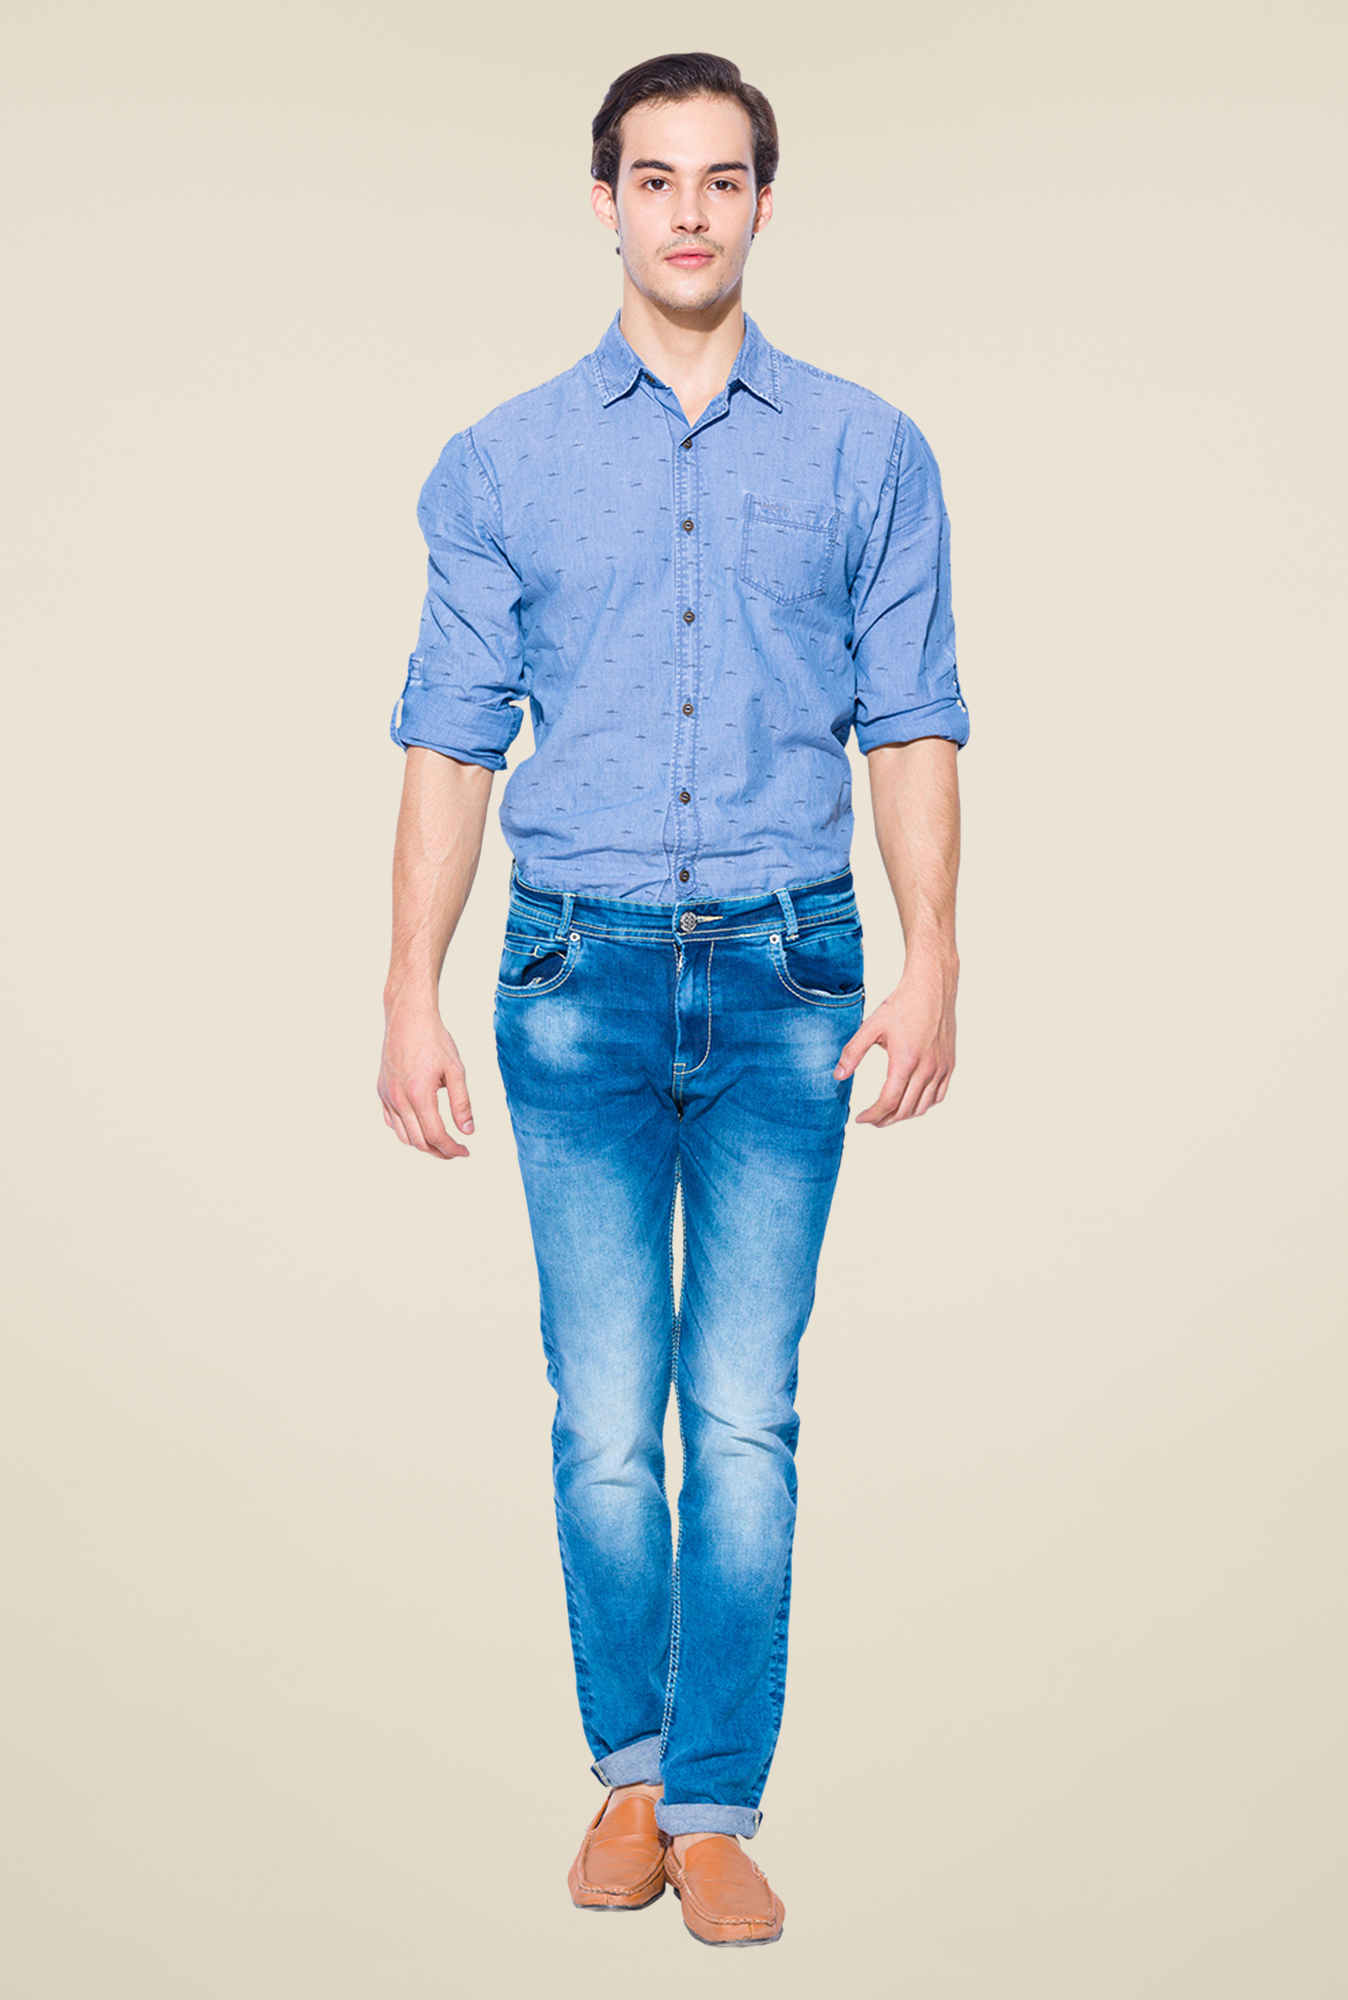 Mufti Blue Heavily Washed Jeans